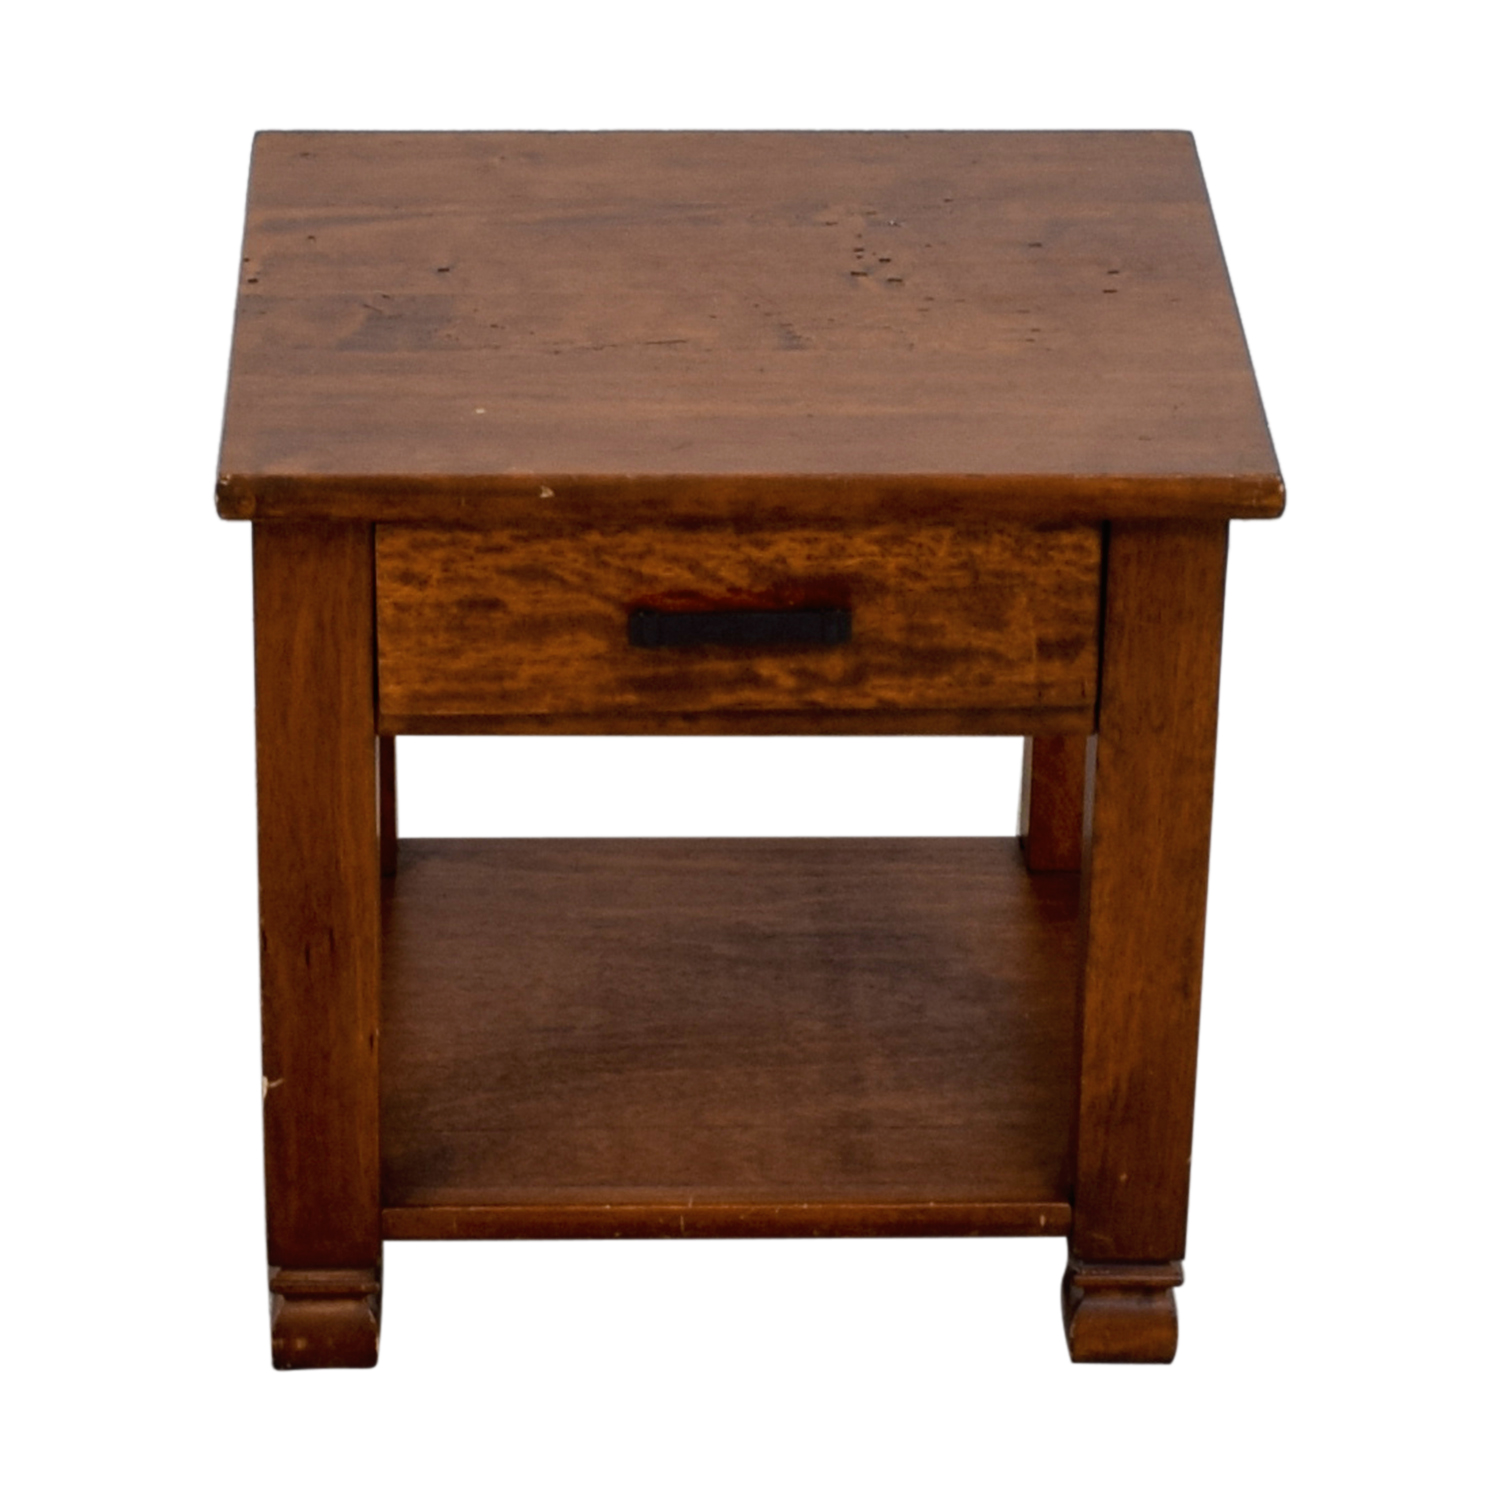 shop Pottery Barn Single Drawer Wood End Table Pottery Barn End Tables